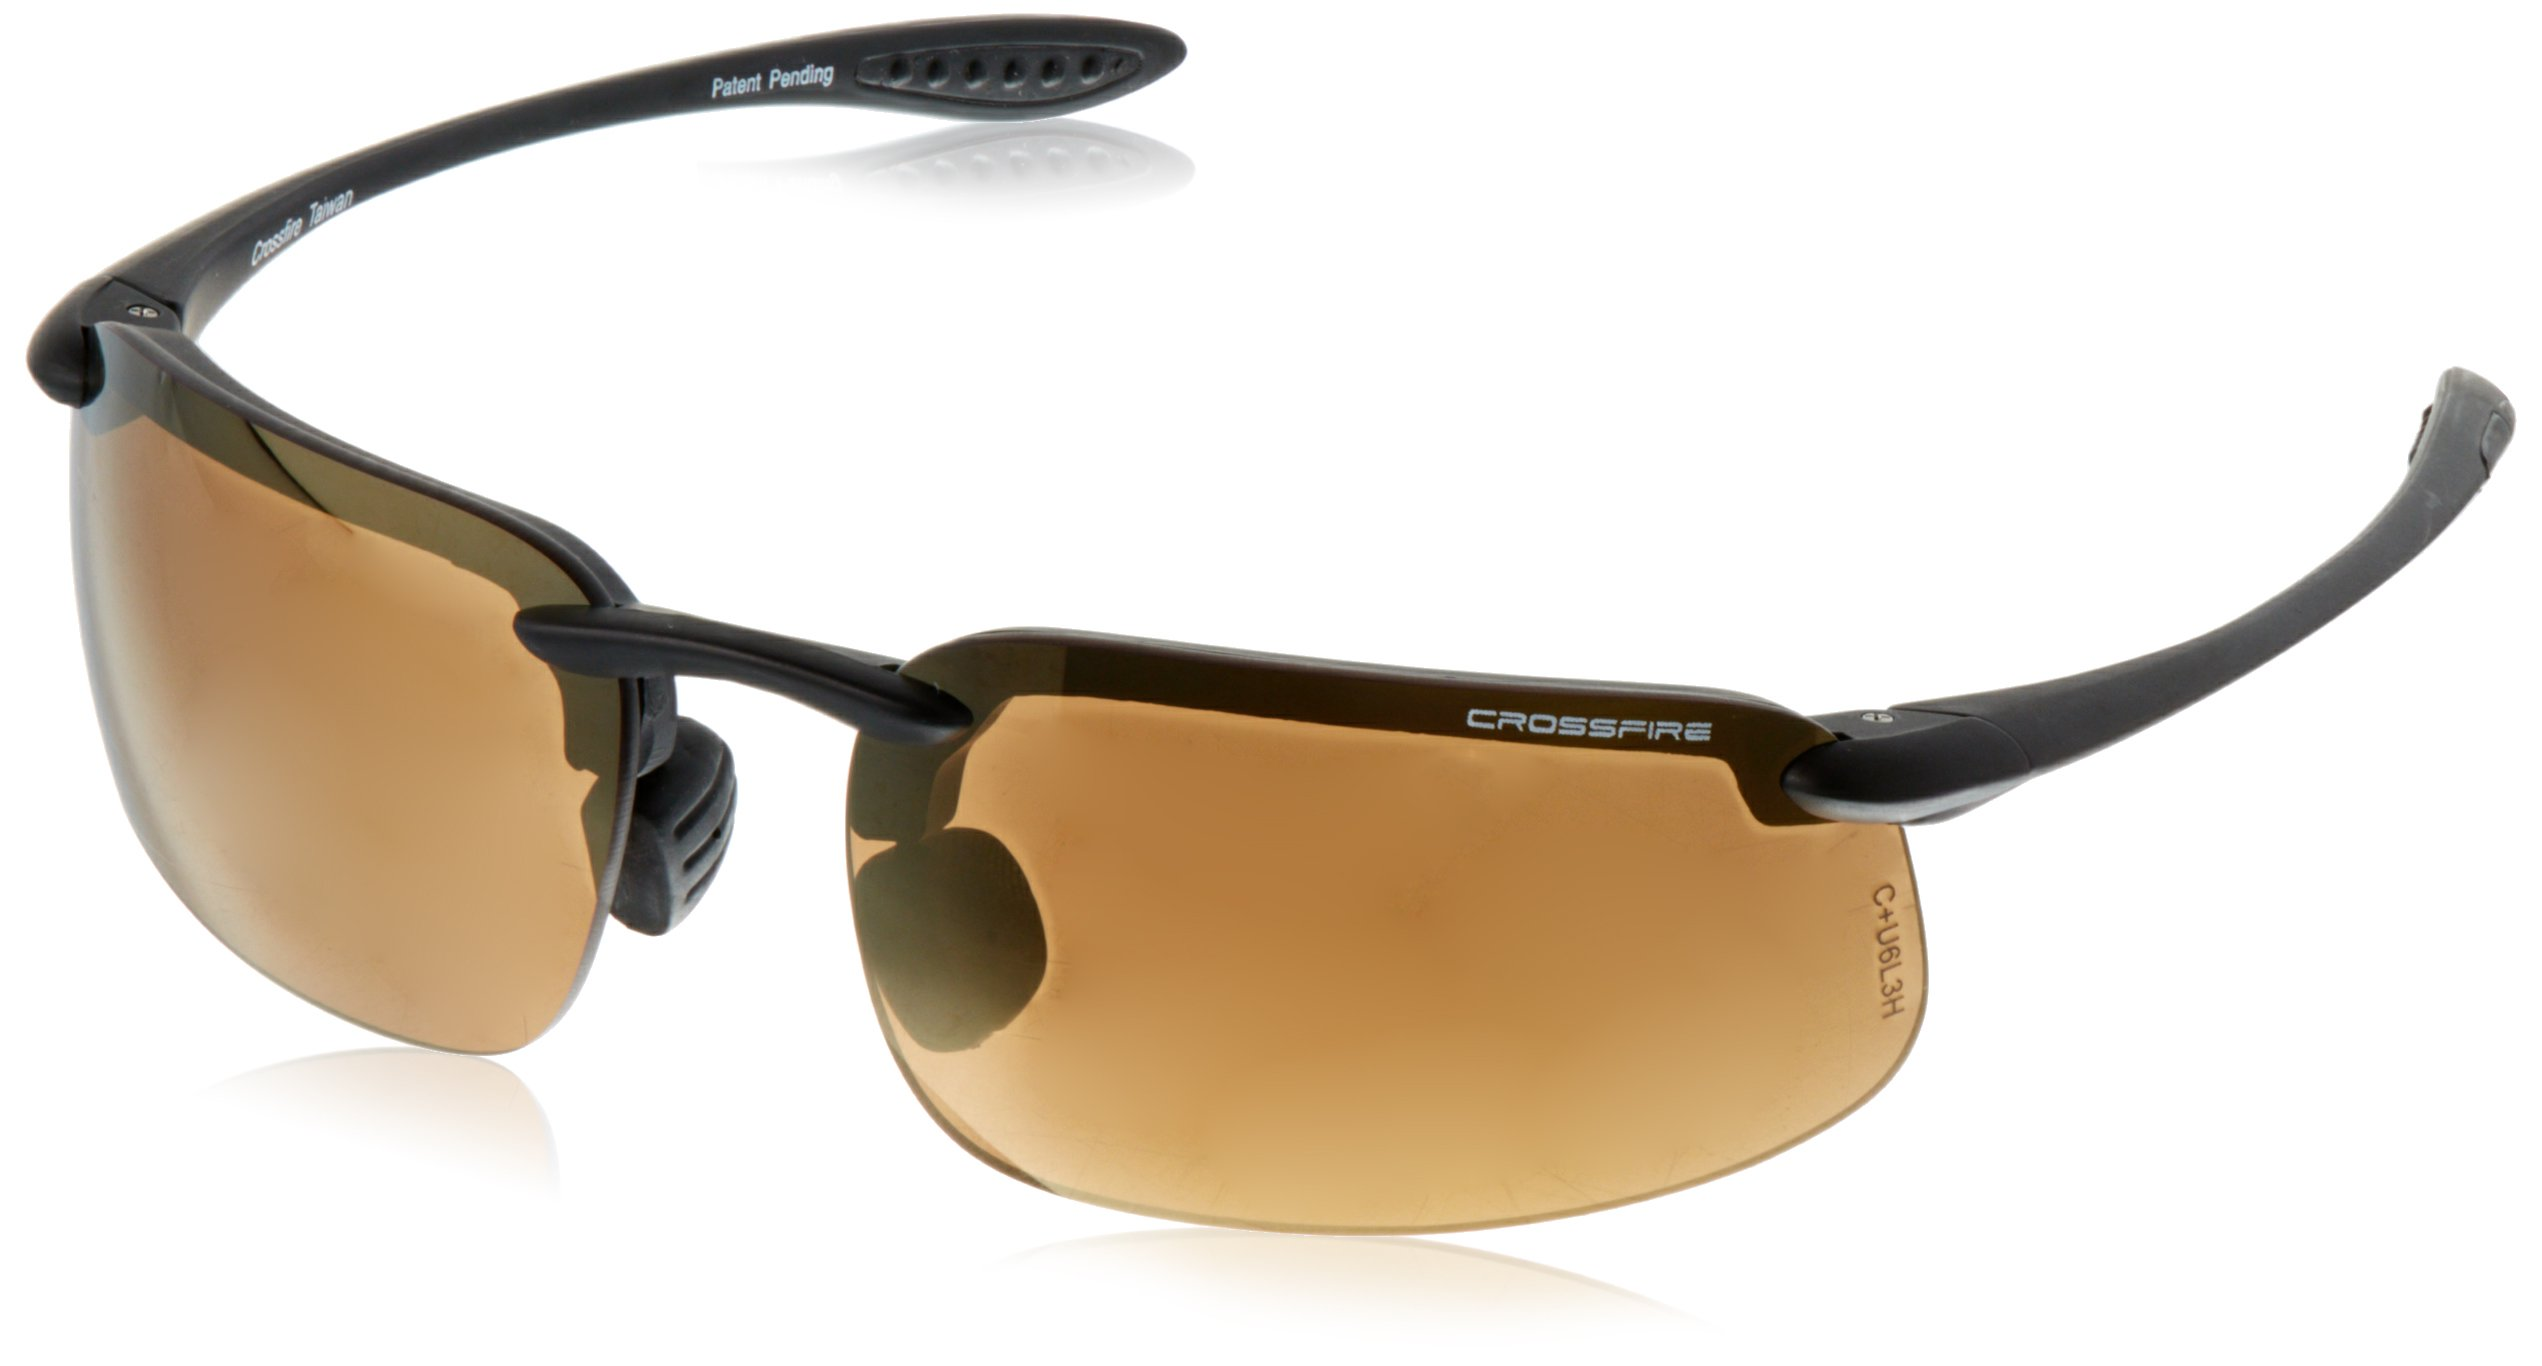 Crossfire Eyewear 216115 1.5 Diopter ES4 Safety Glasses with Black Frame and Bronze Lens by Crossfire Eyewear